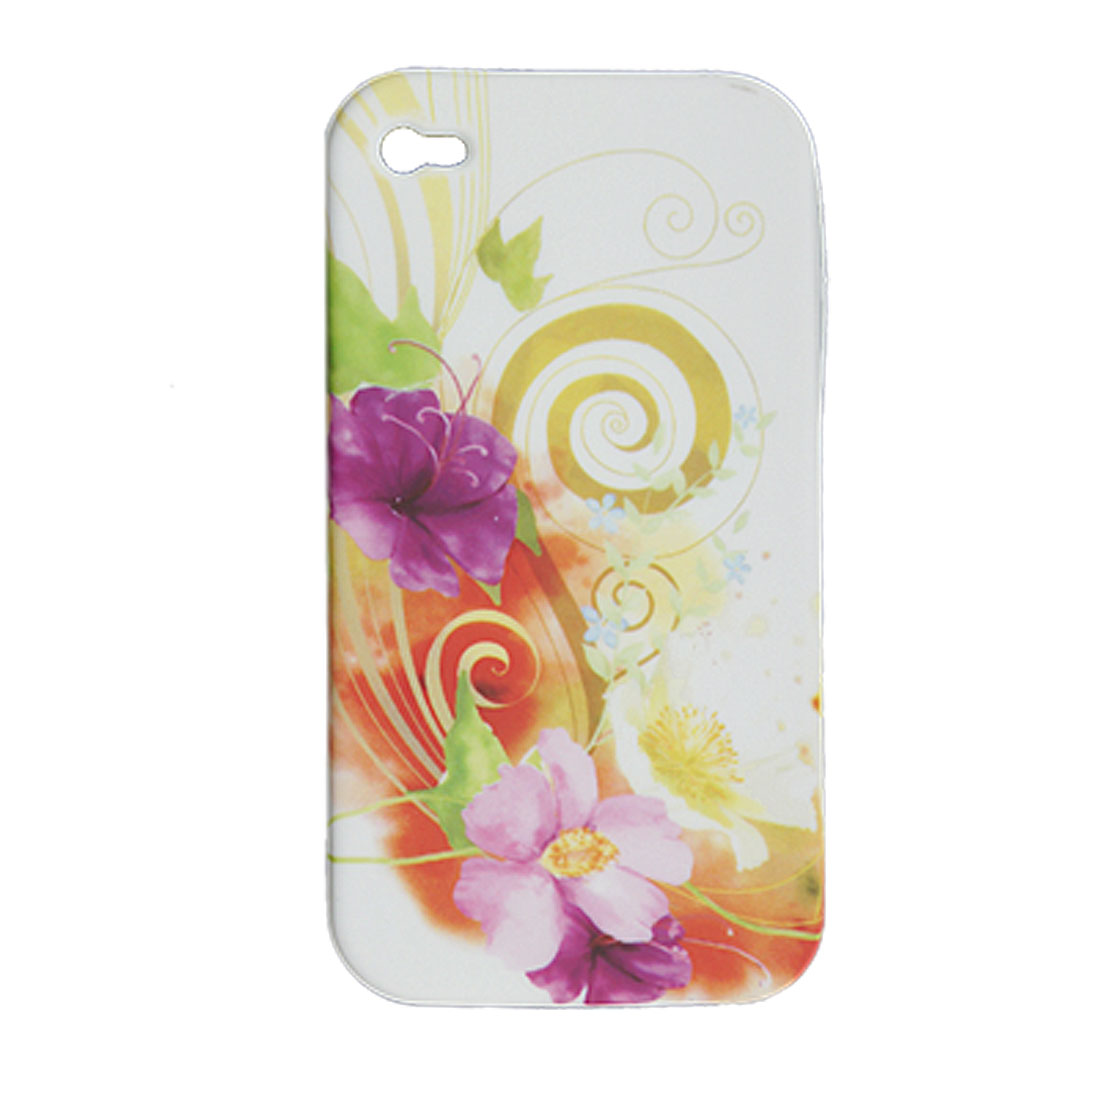 Soft Colorful Plastic Flower Back Case for iPhone 4 4G